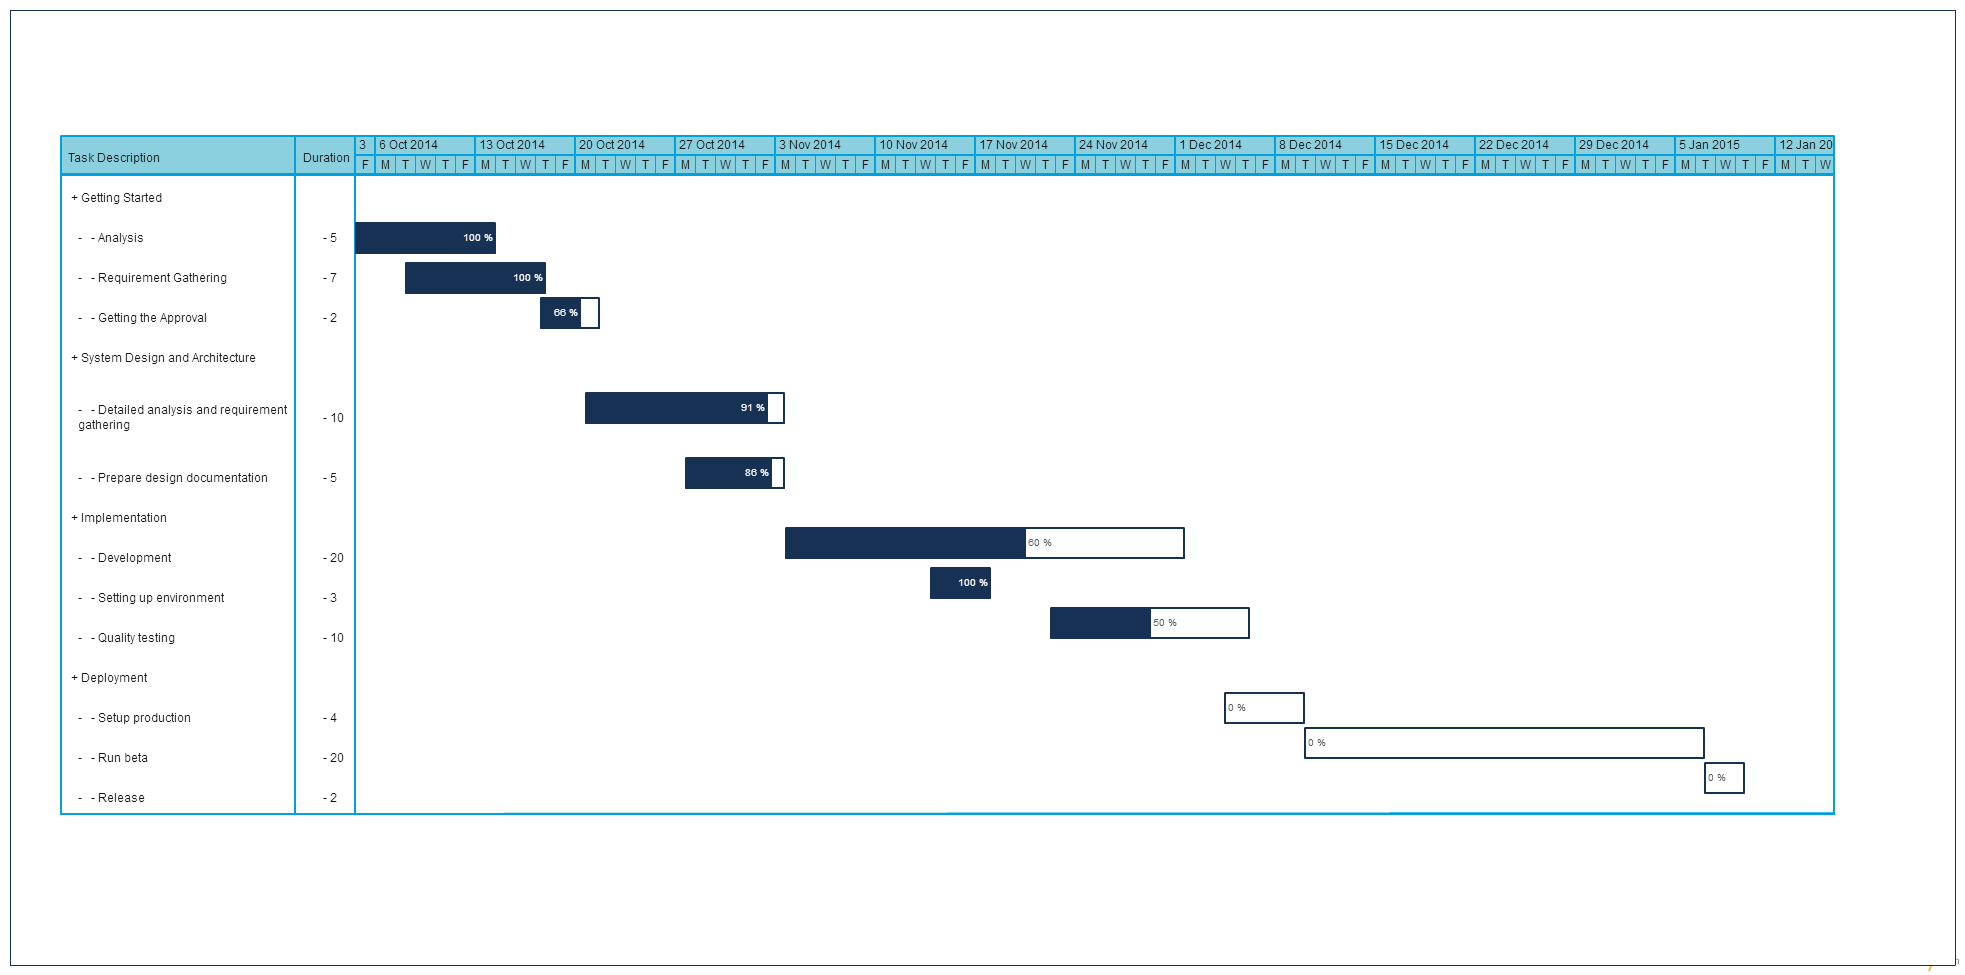 Gantt Chart Templates To Instantly Create Project Timelines - Timeline gantt chart template